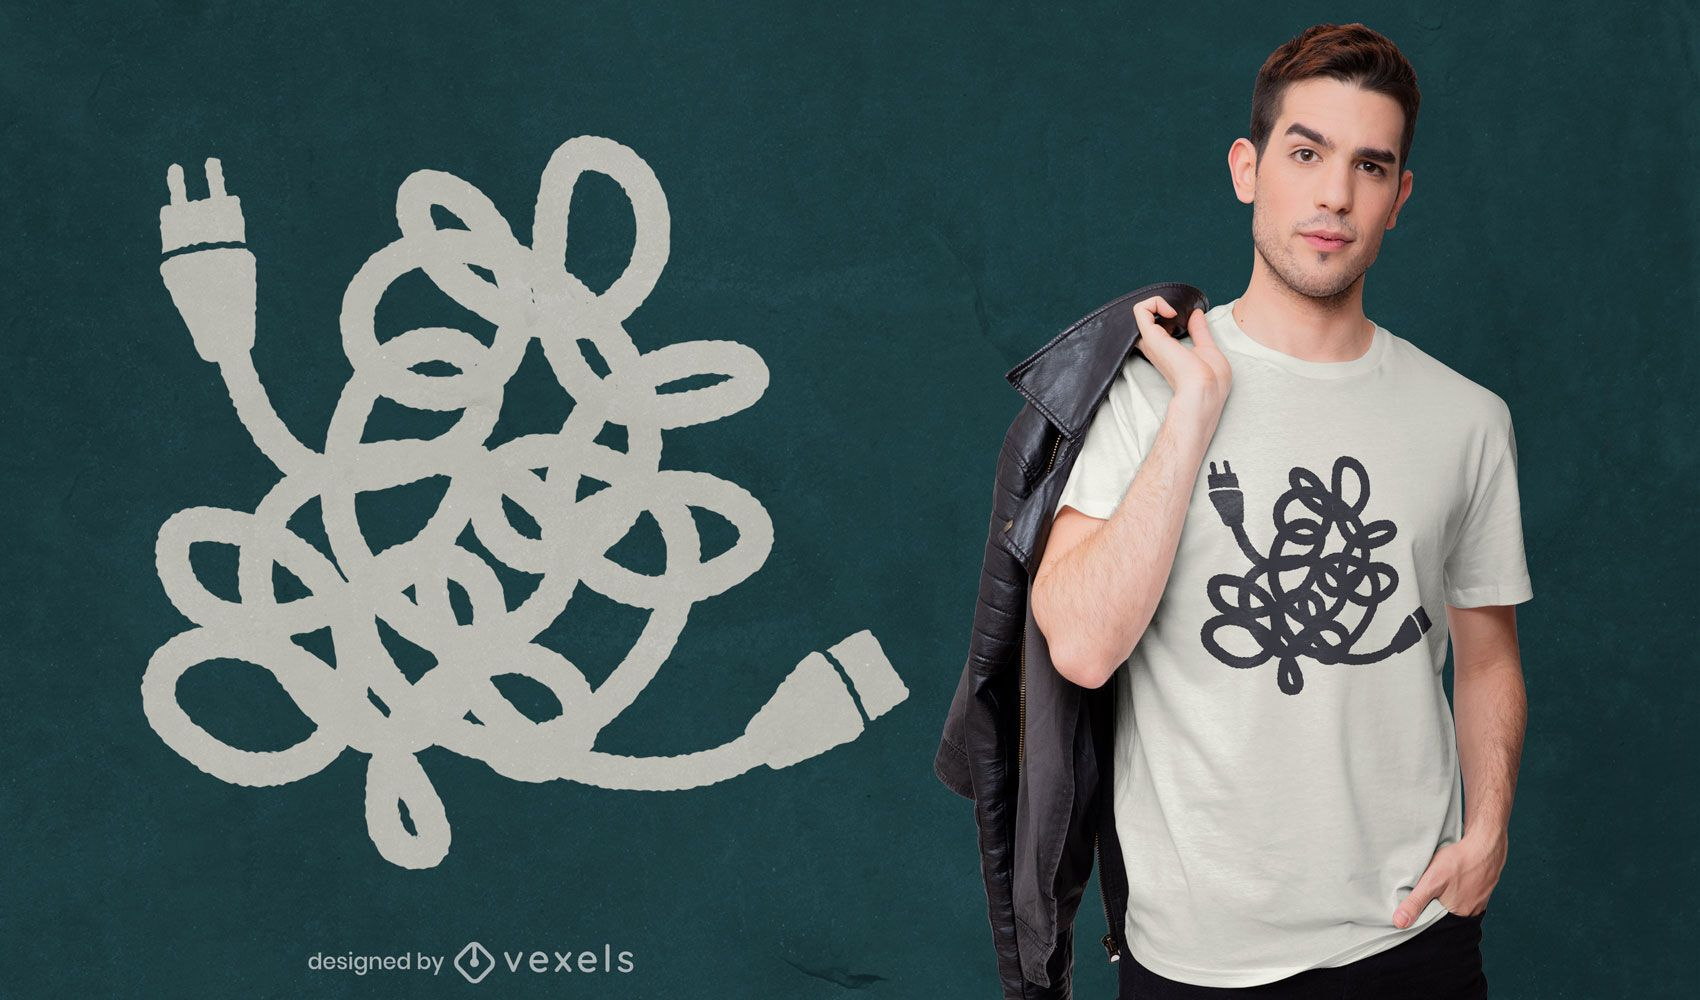 Tangled power cables t-shirt design